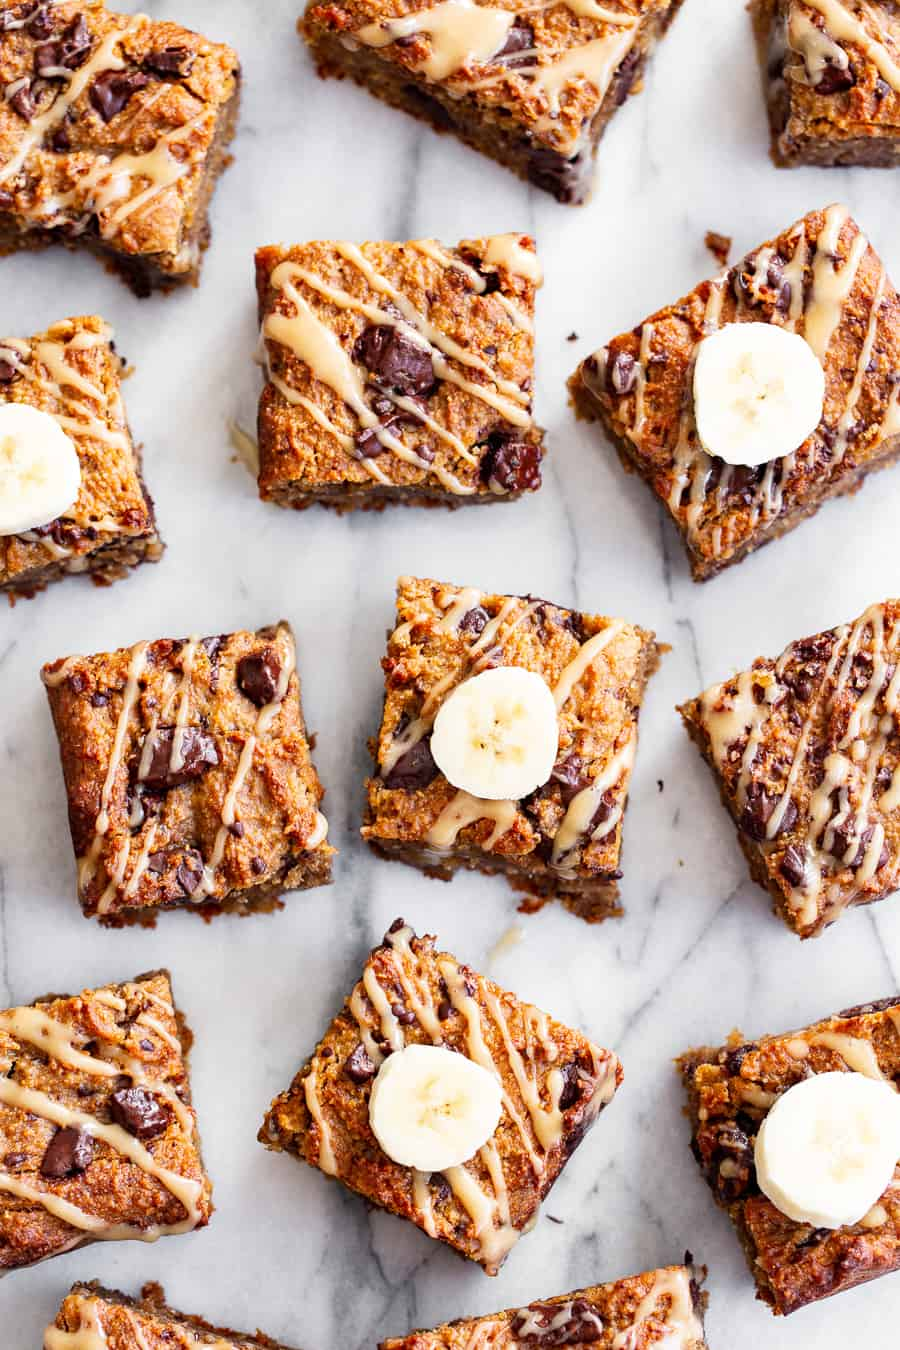 These one-bowl almond butter banana bread bars are a simple and totally delicious treat to make any time! Great for snacks and dessert, they're packed with good fats, banana flavor and dark chocolate. Top them with an almond butter icing to take them to the next level! Vegan, paleo, refined sugar free, egg free. #paleo #vegan #glutenfree